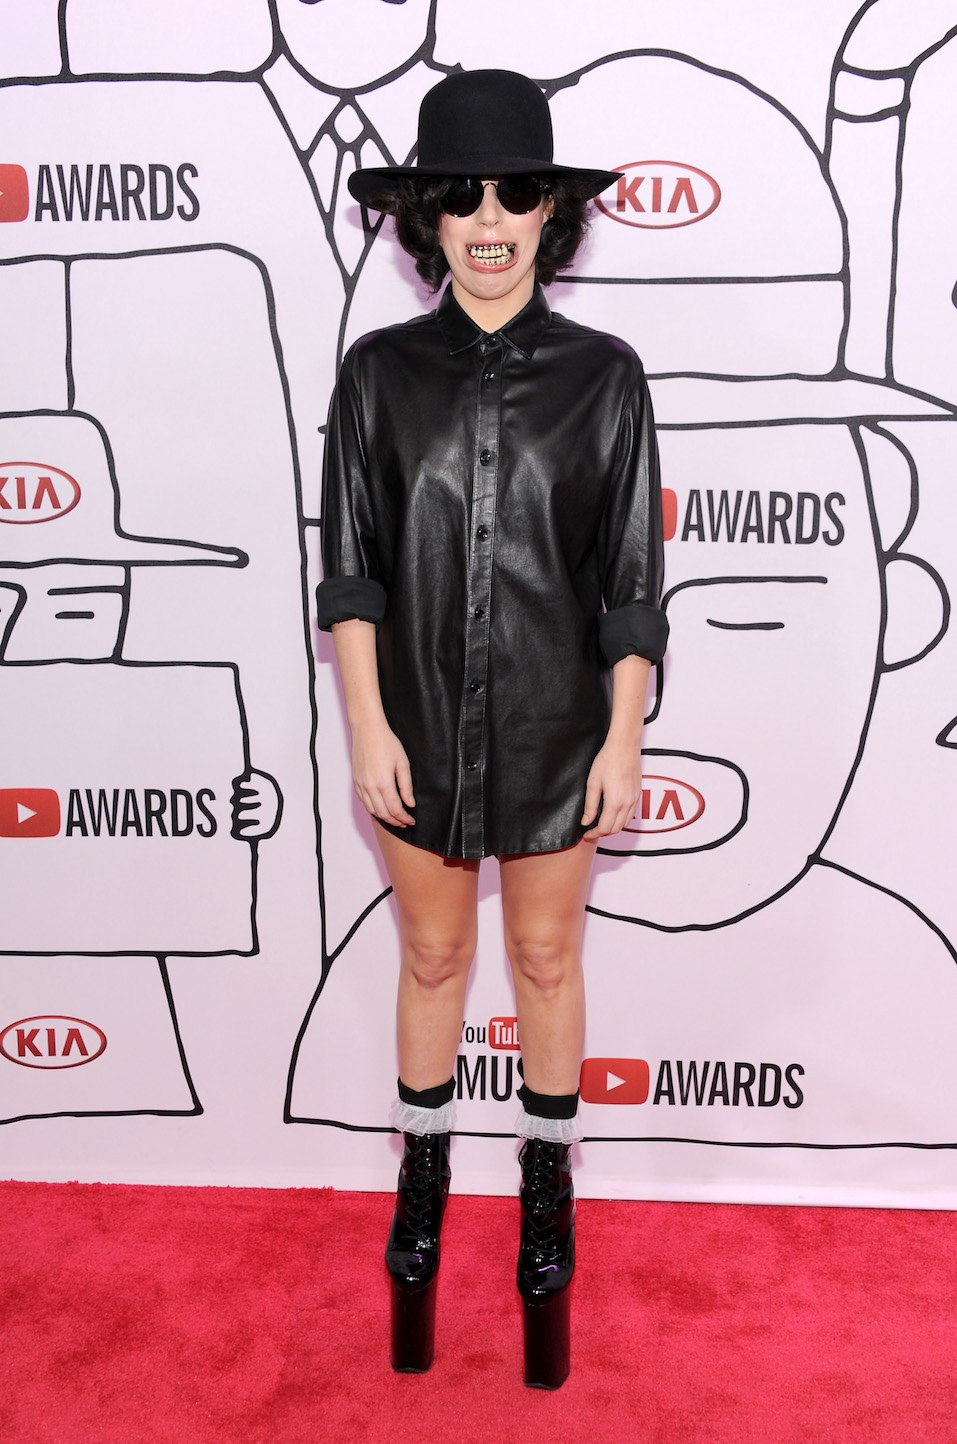 Singer Lady Gaga attends the YouTube Music Awards 2013